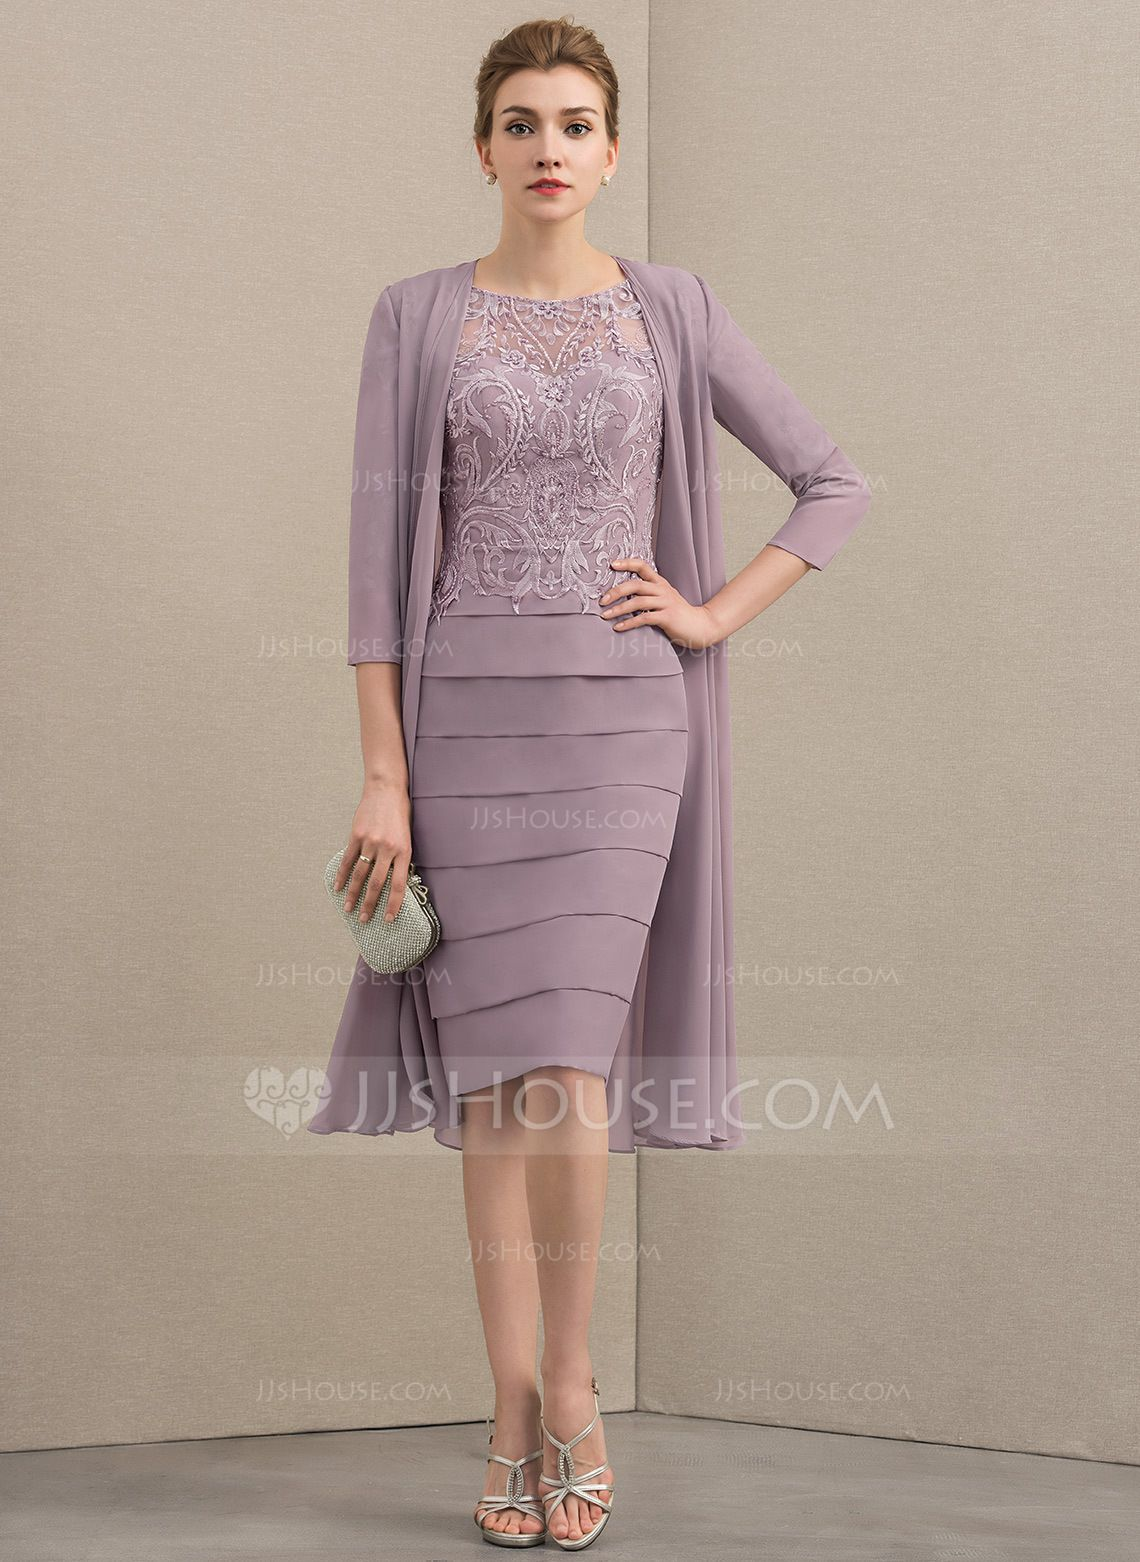 a0e1ea4a4dc Sheath Column Scoop Neck Knee-Length Chiffon Lace Mother of the Bride Dress  With Beading Sequins (008152137) - Mother of the Bride Dresses - JJ s House